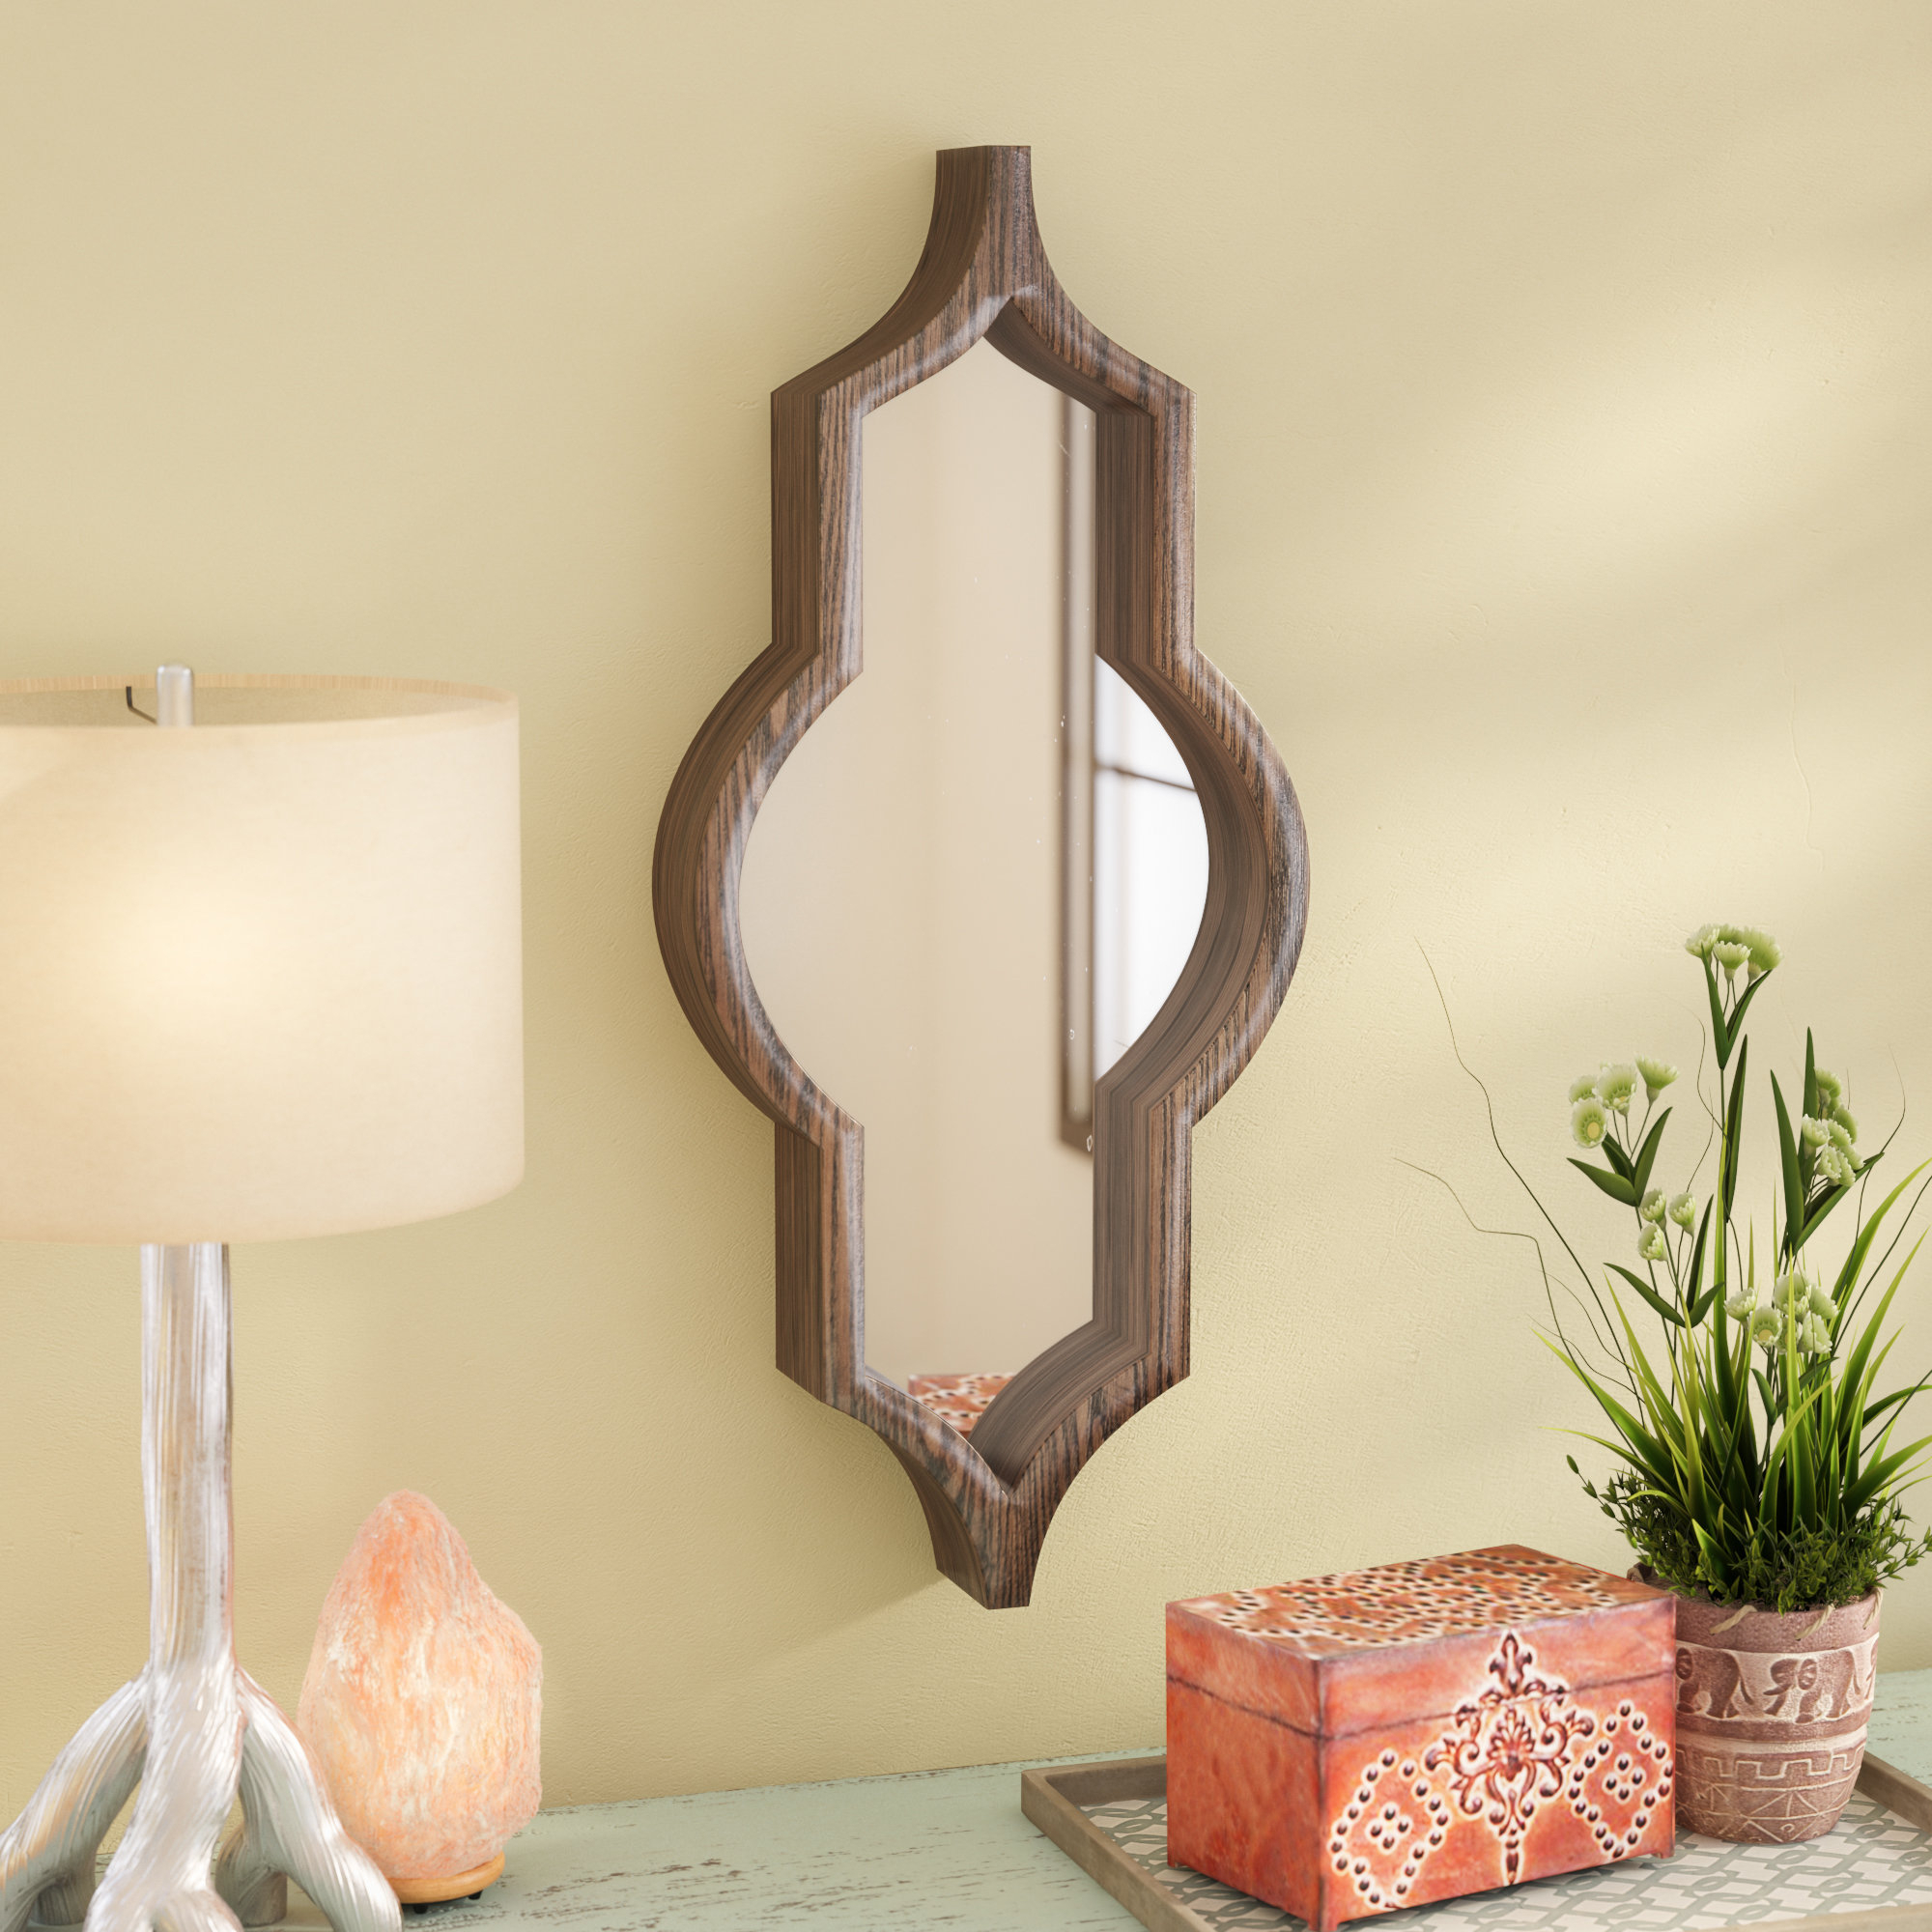 Latest Padang Irregular Wood Framed Wall Mirrors Within Mistana Padang Irregular Wood Framed Wall Mirror (Gallery 2 of 20)